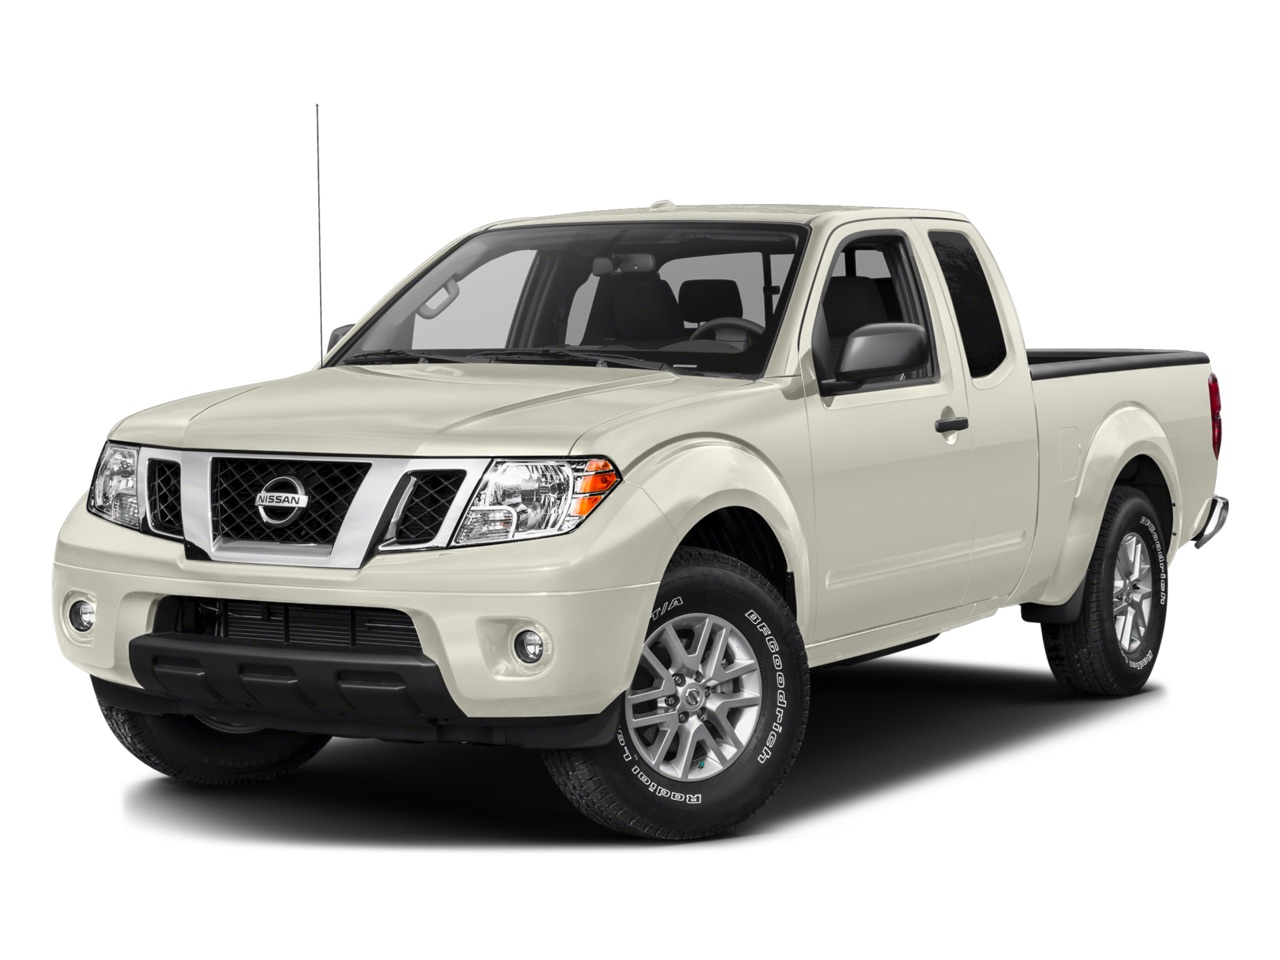 Nissan Frontier (D22-D40 Series) 1998-2016 Workshop Repair & Service Manual